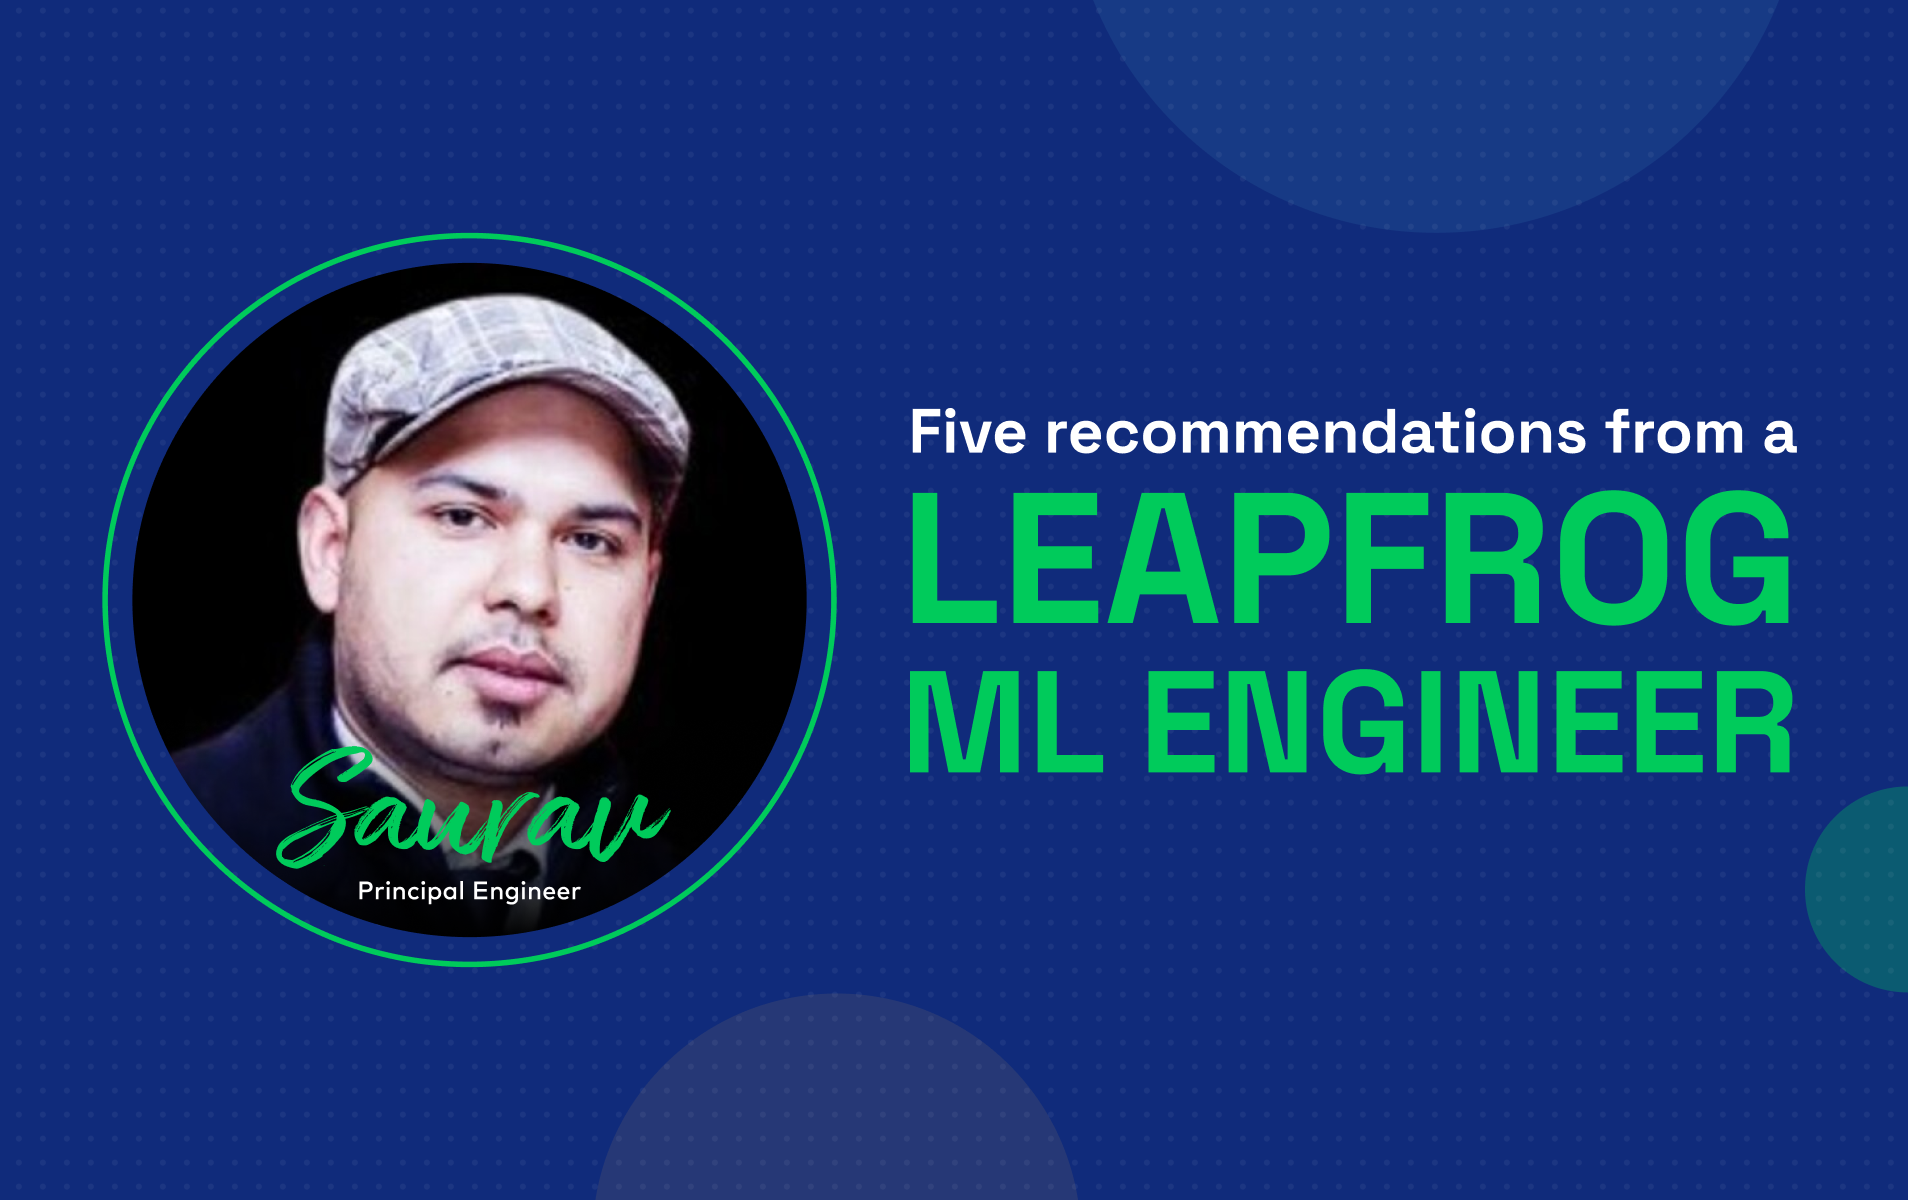 Five Recommendations from a Leapfrog ML Engineer